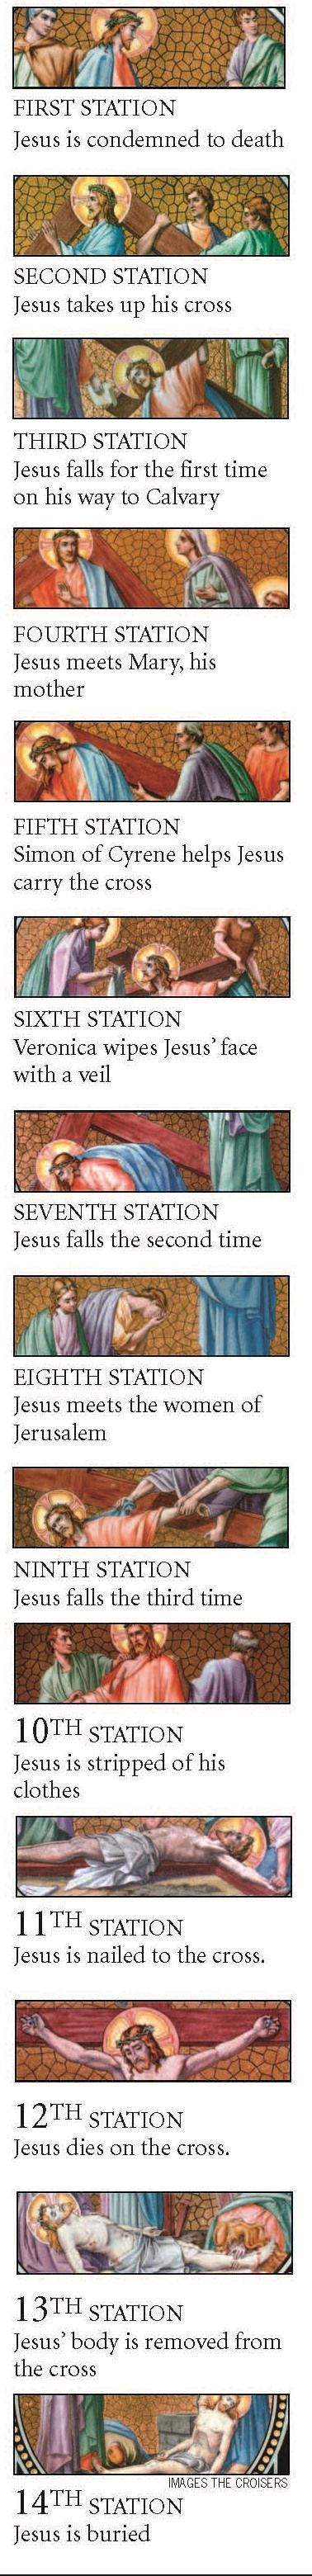 Stations of the Cross and other Lenten traditions http://osv.cm/UVHN5d (PDF) #Lent #catholics